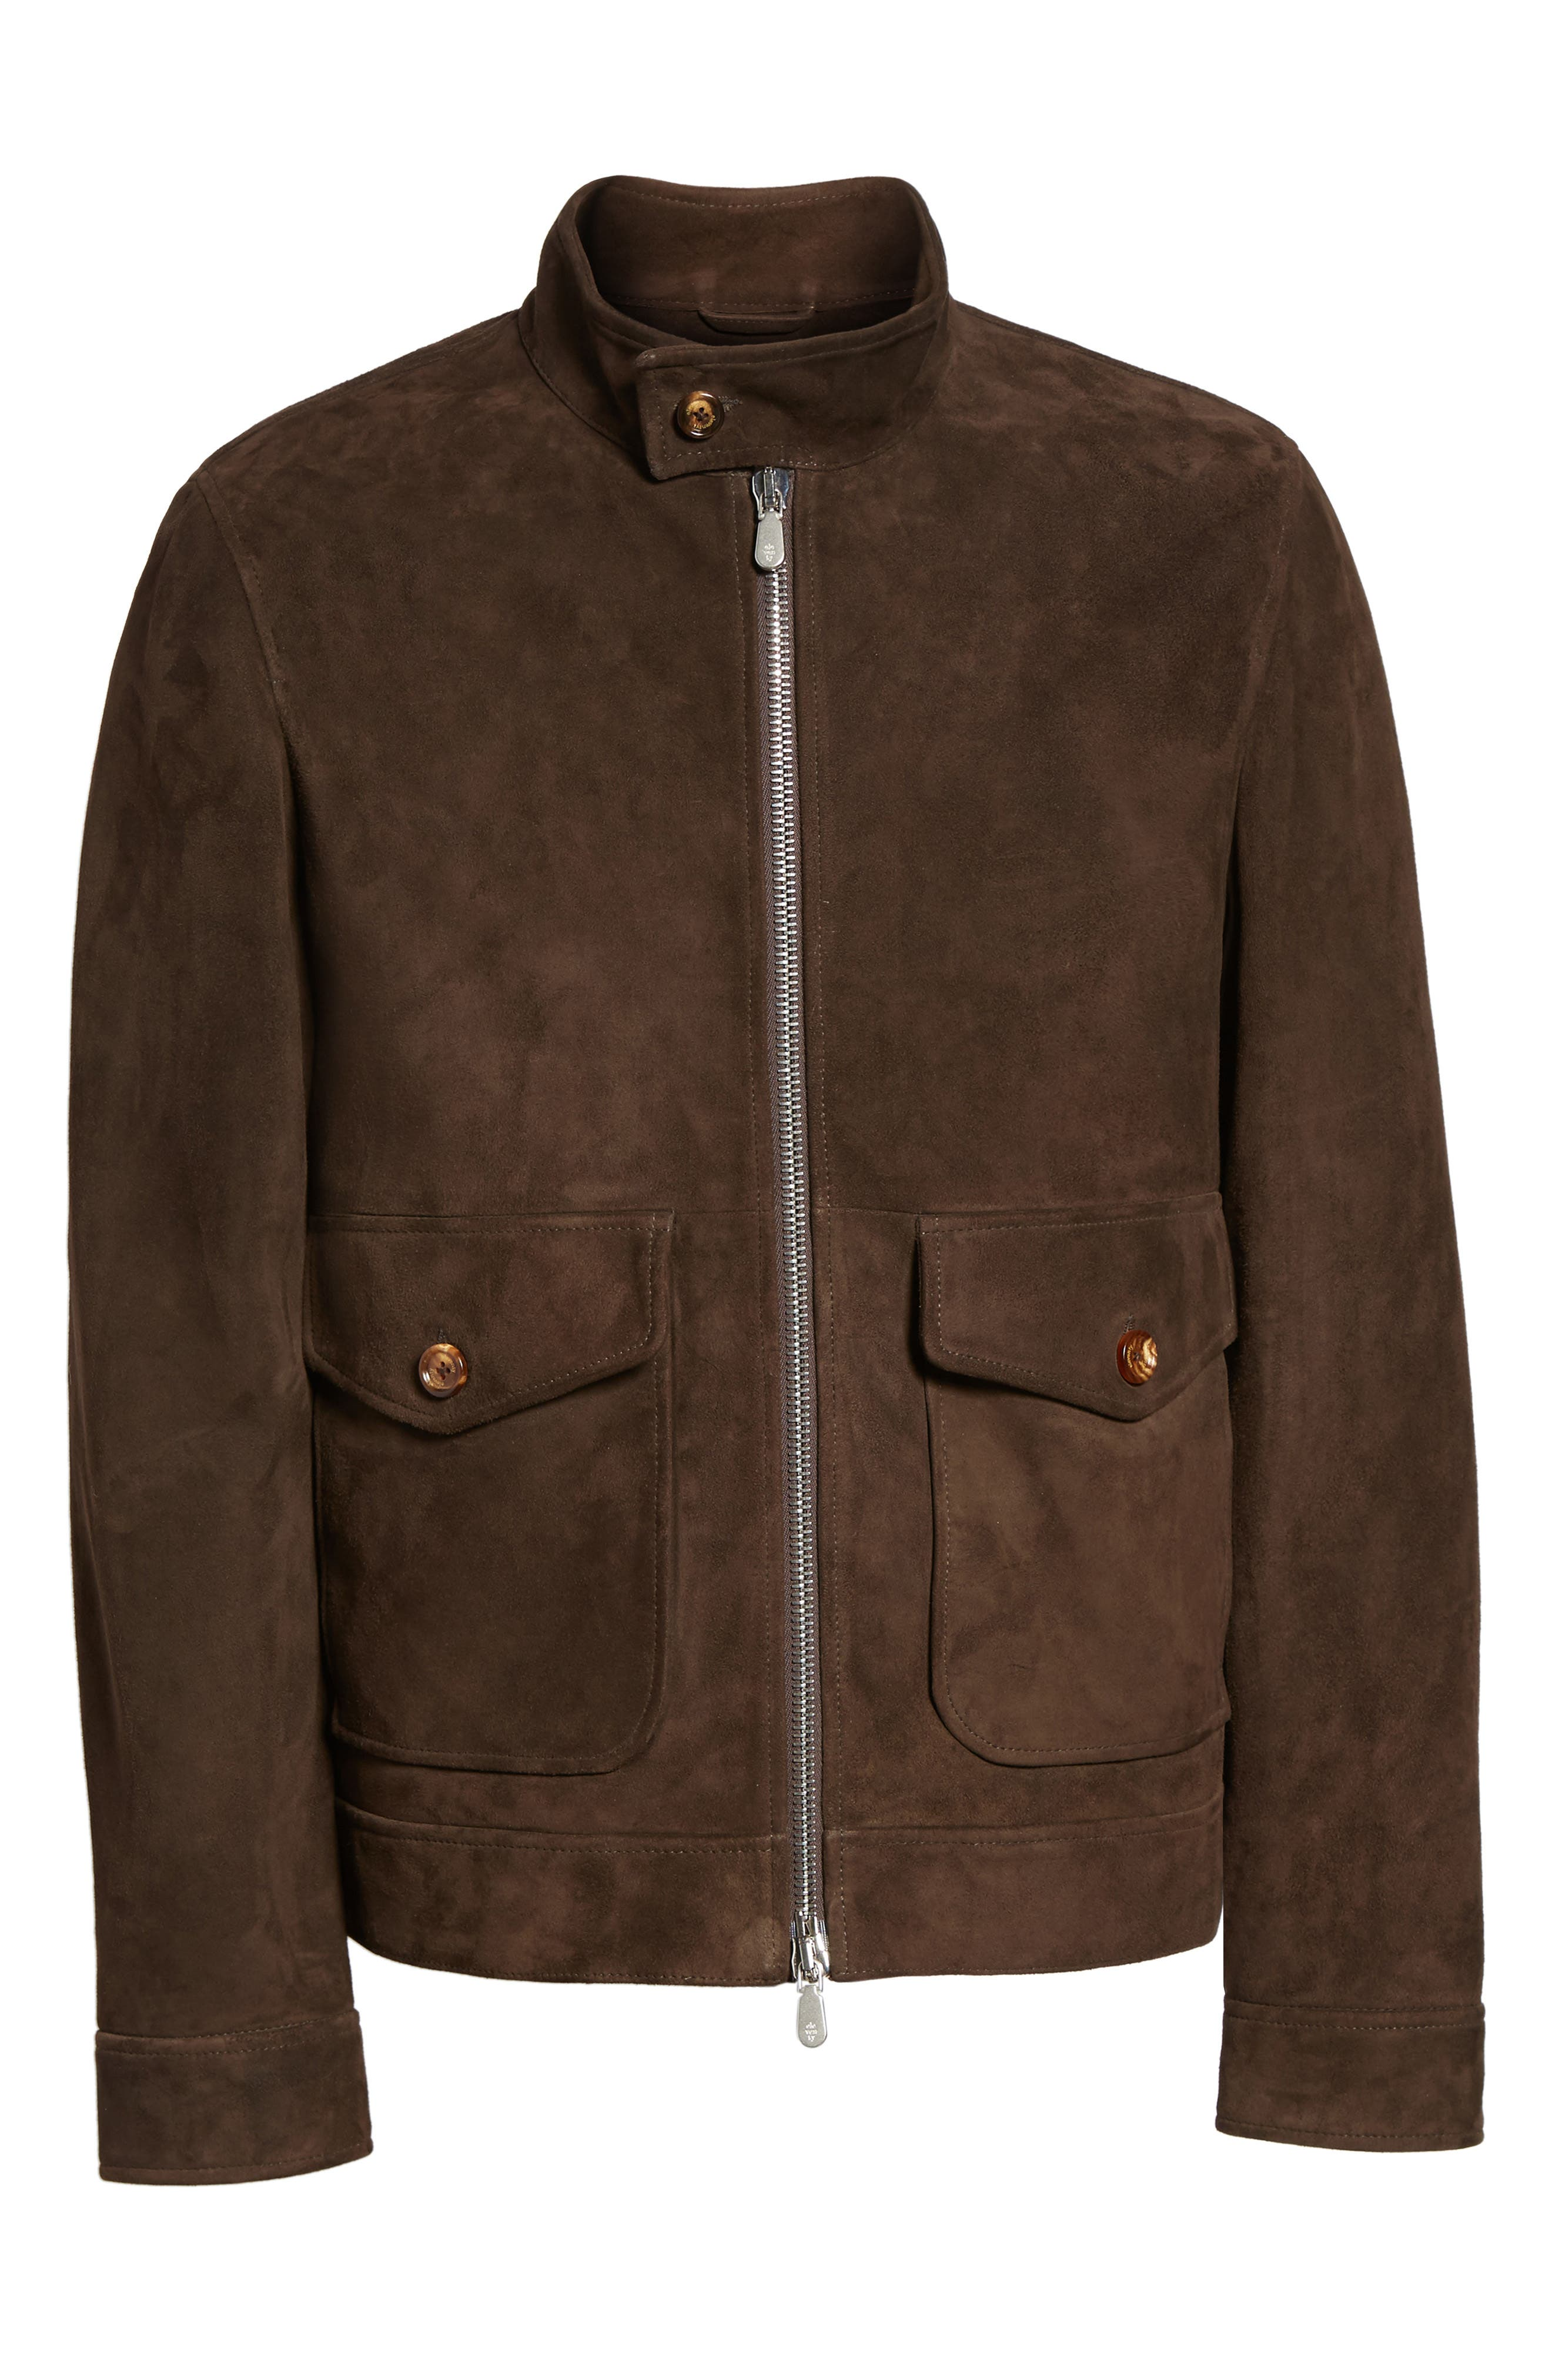 Suede Jacket,                             Alternate thumbnail 7, color,                             Chocolate Brown